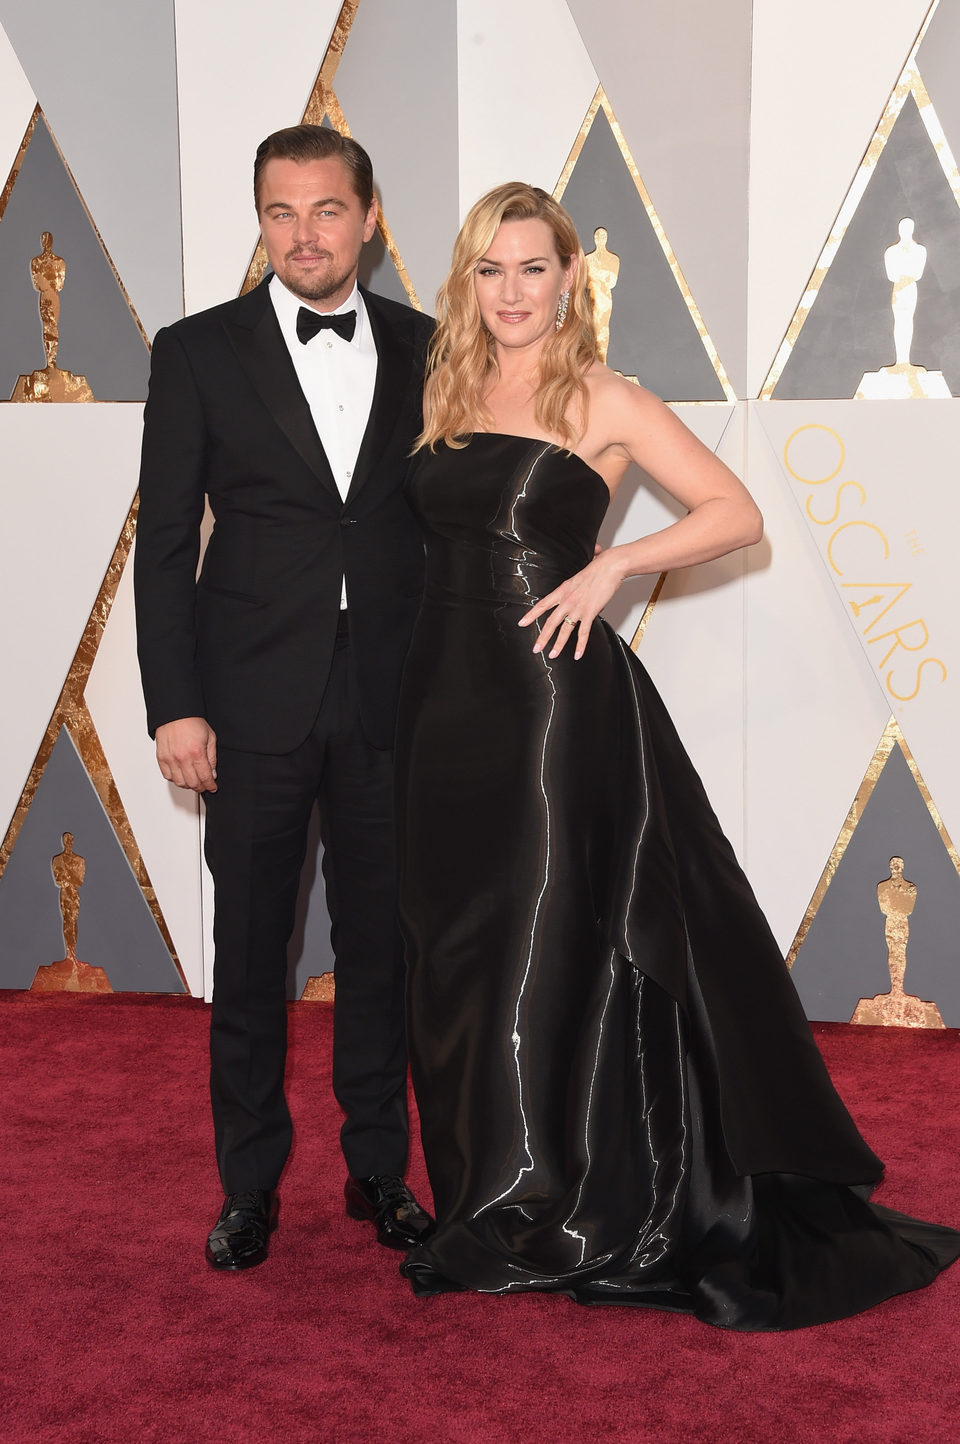 Leonardo DiCaprio and Kate Winslet at the Oscars 2016 red carpet